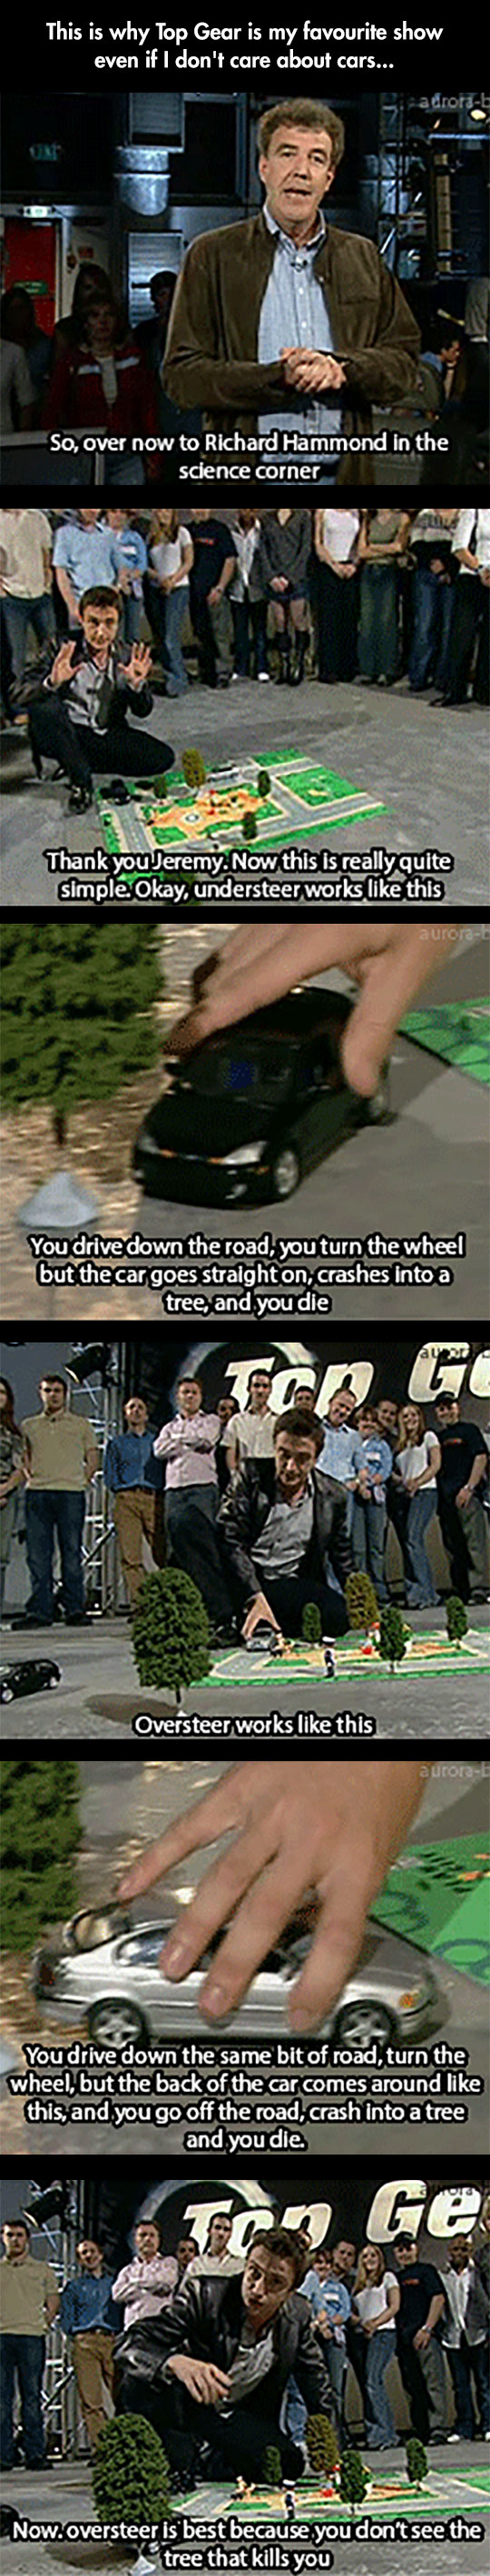 funny-Top-Gear-favorite-show-under-steer